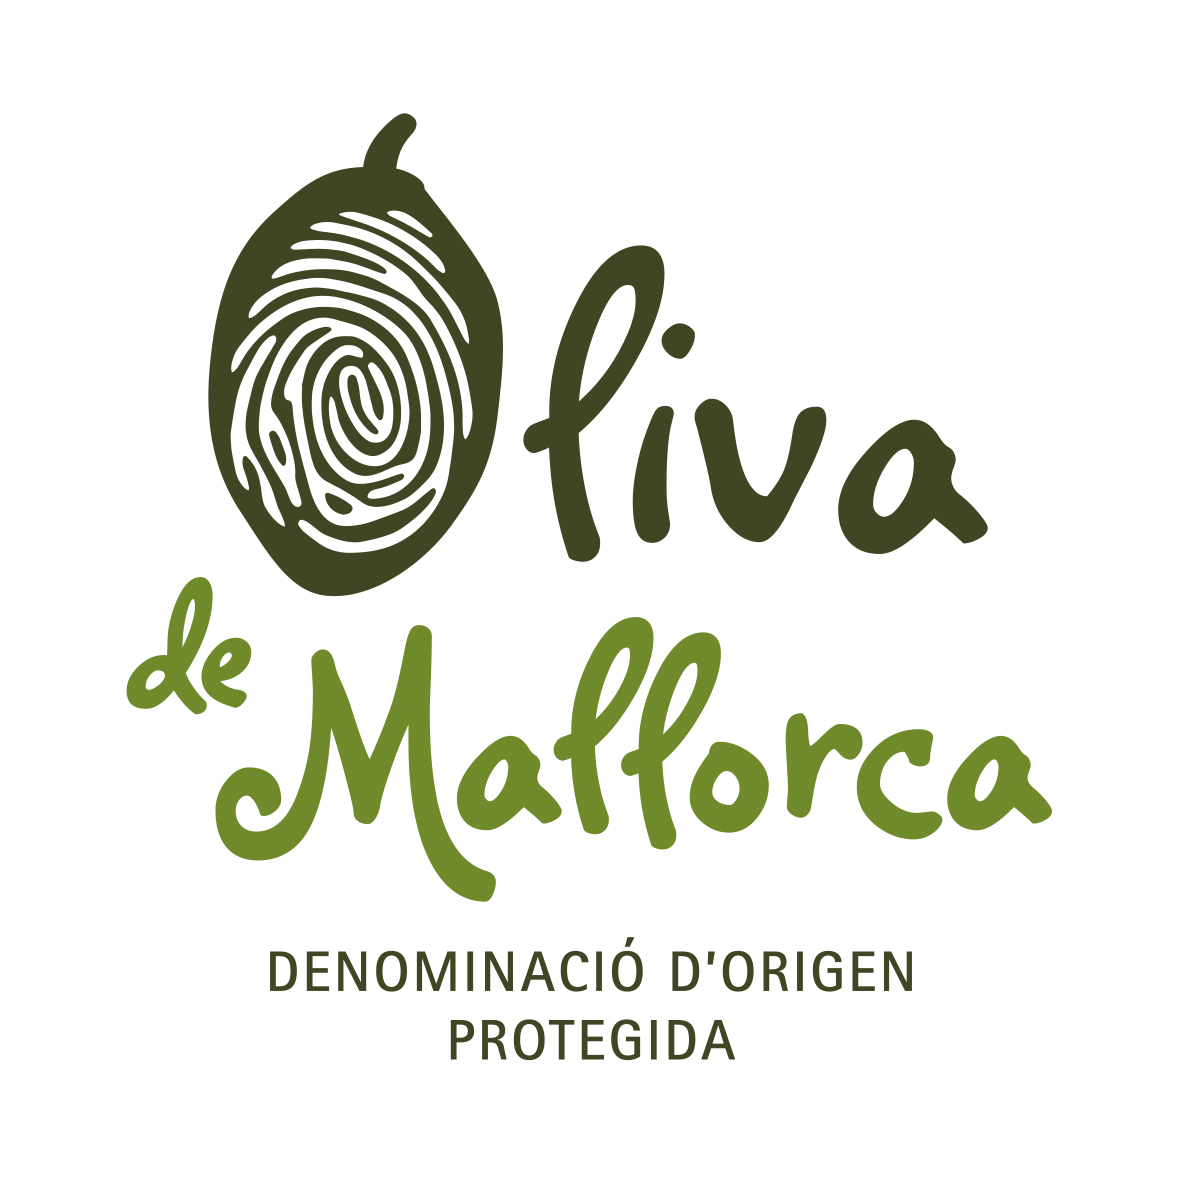 Oliva de Mallorca - Balearic Islands - Agrifoodstuffs, designations of origin and Balearic gastronomy